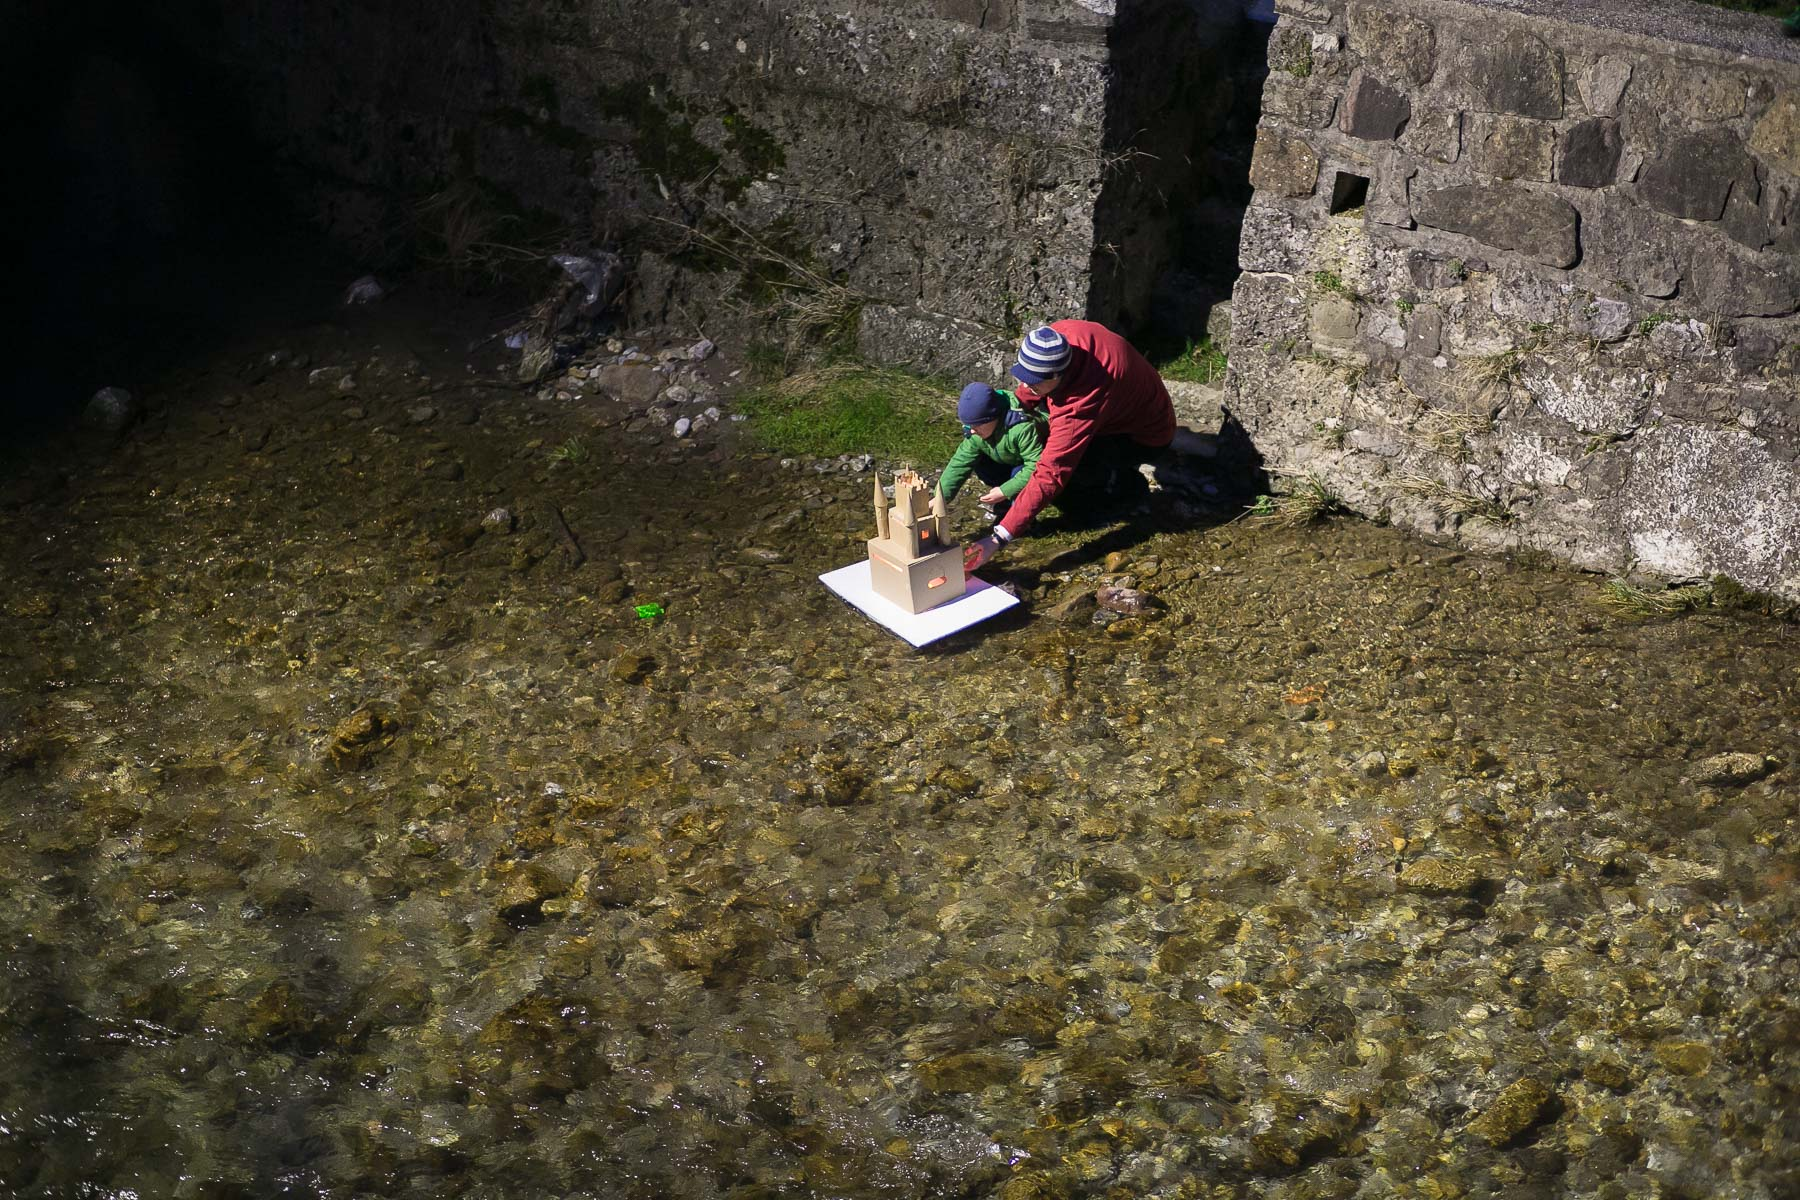 A man and a boy release their model house or {quote}gregorcek{quote} down the river during a traditional event called Light in the water, in which model houses and other objects are lit with candles and thrown in the water to symbolize the coming of spring, in Trzic, Slovenia, on March 11, 2016, the eve before St. Gregory's Day that was once the first day of spring.